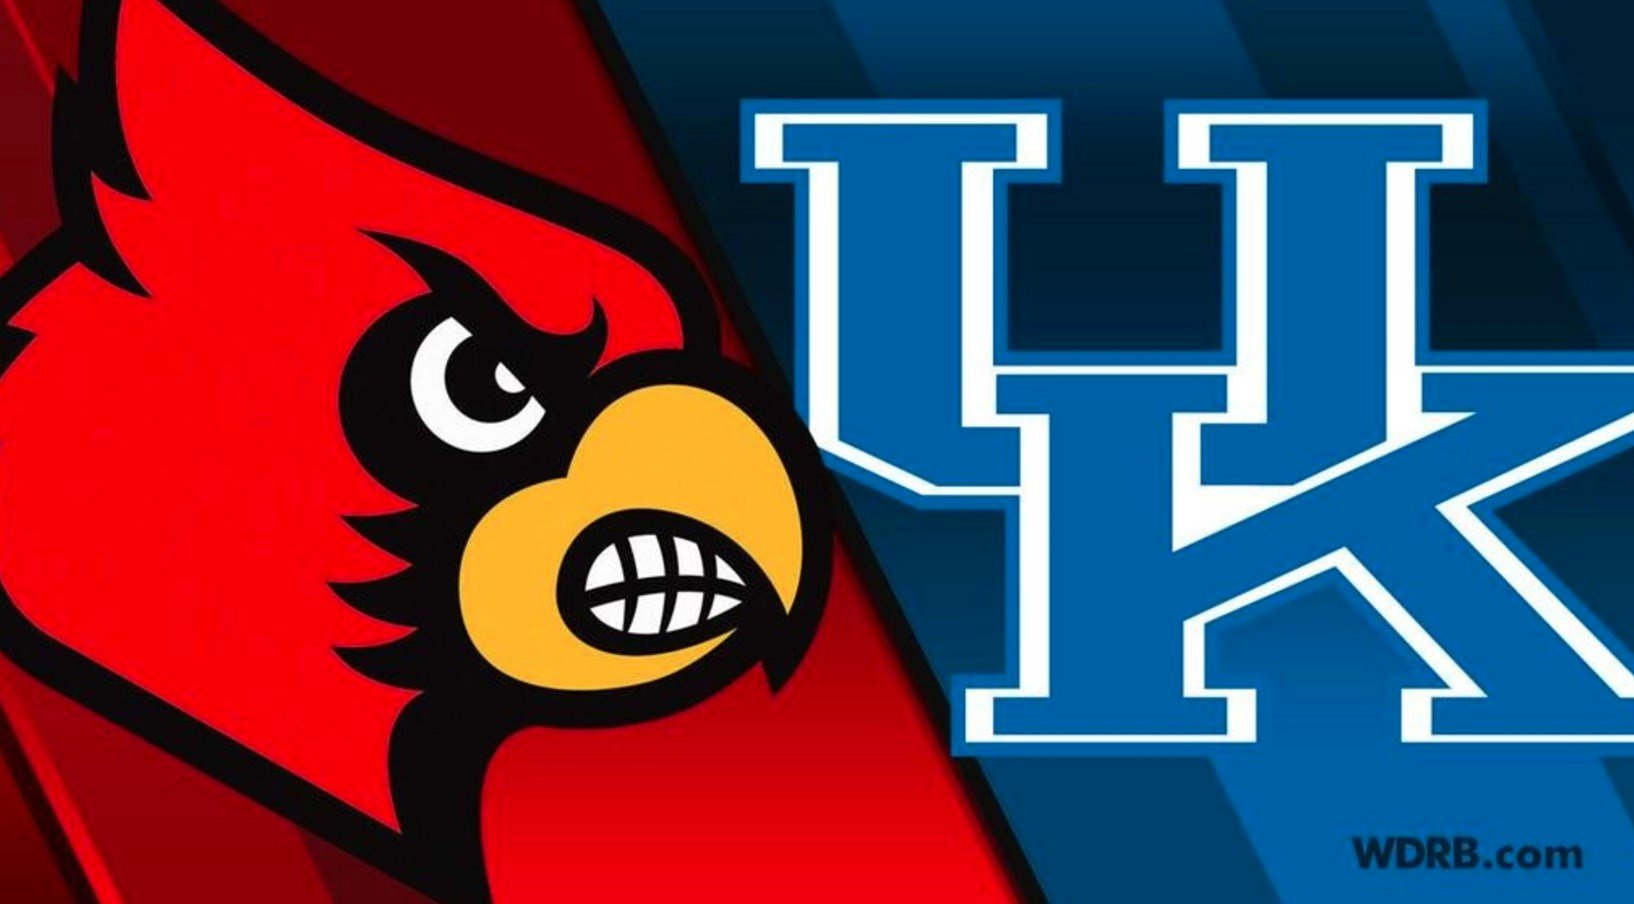 There are more Florida and Ohio players than Kentucky players starting in the U of L-UK football game.